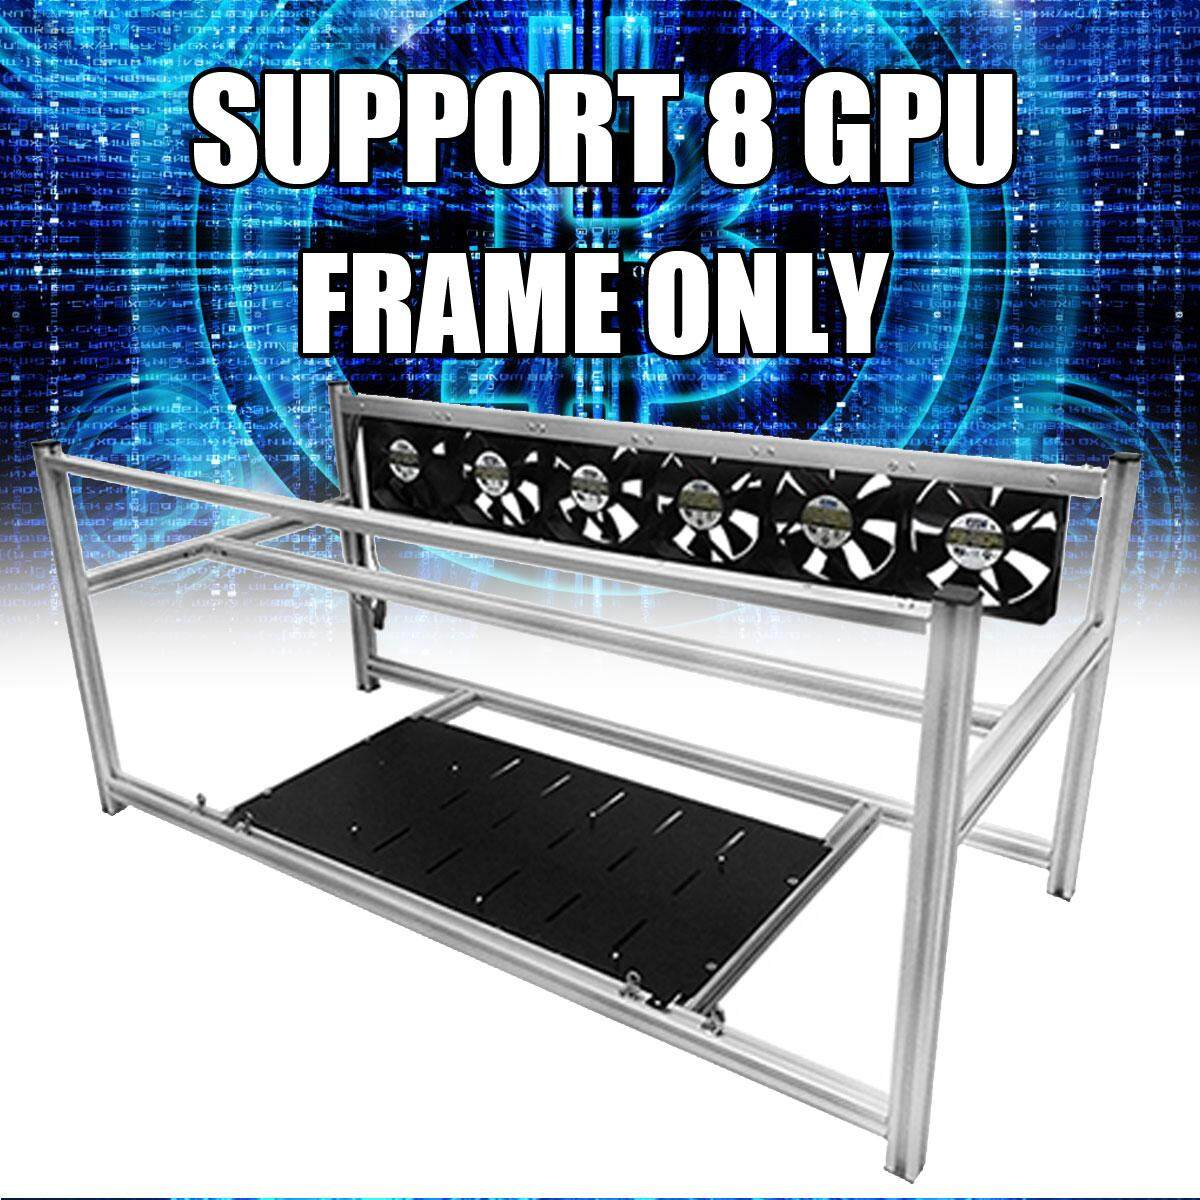 8 GPU Aluminum Open Air Mining Rig Frame Case w/ Stackable Kits For ETH Ethereum